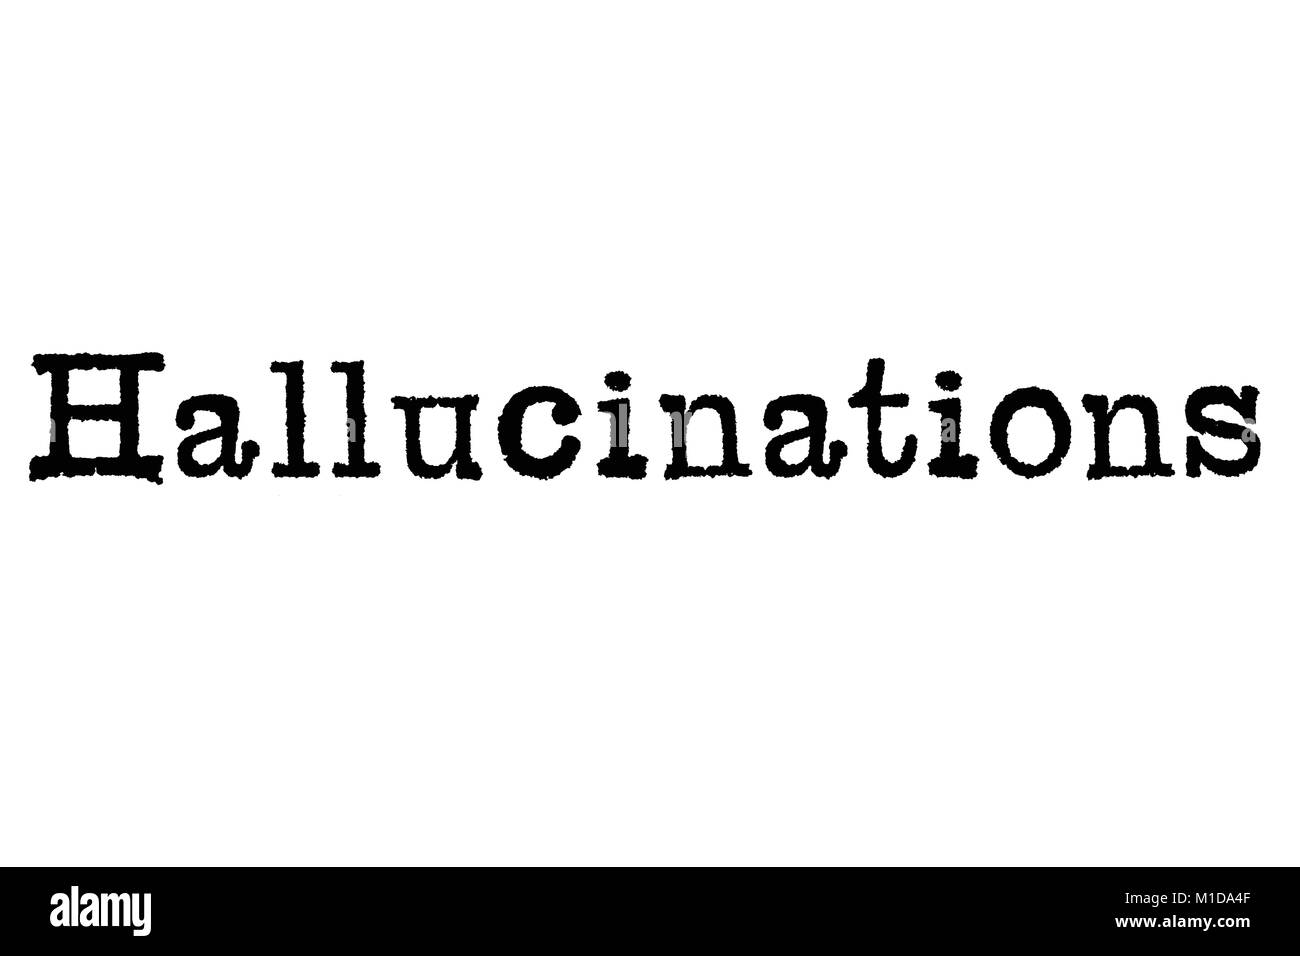 The word Hallucinations from a typewriter on a white background - Stock Image